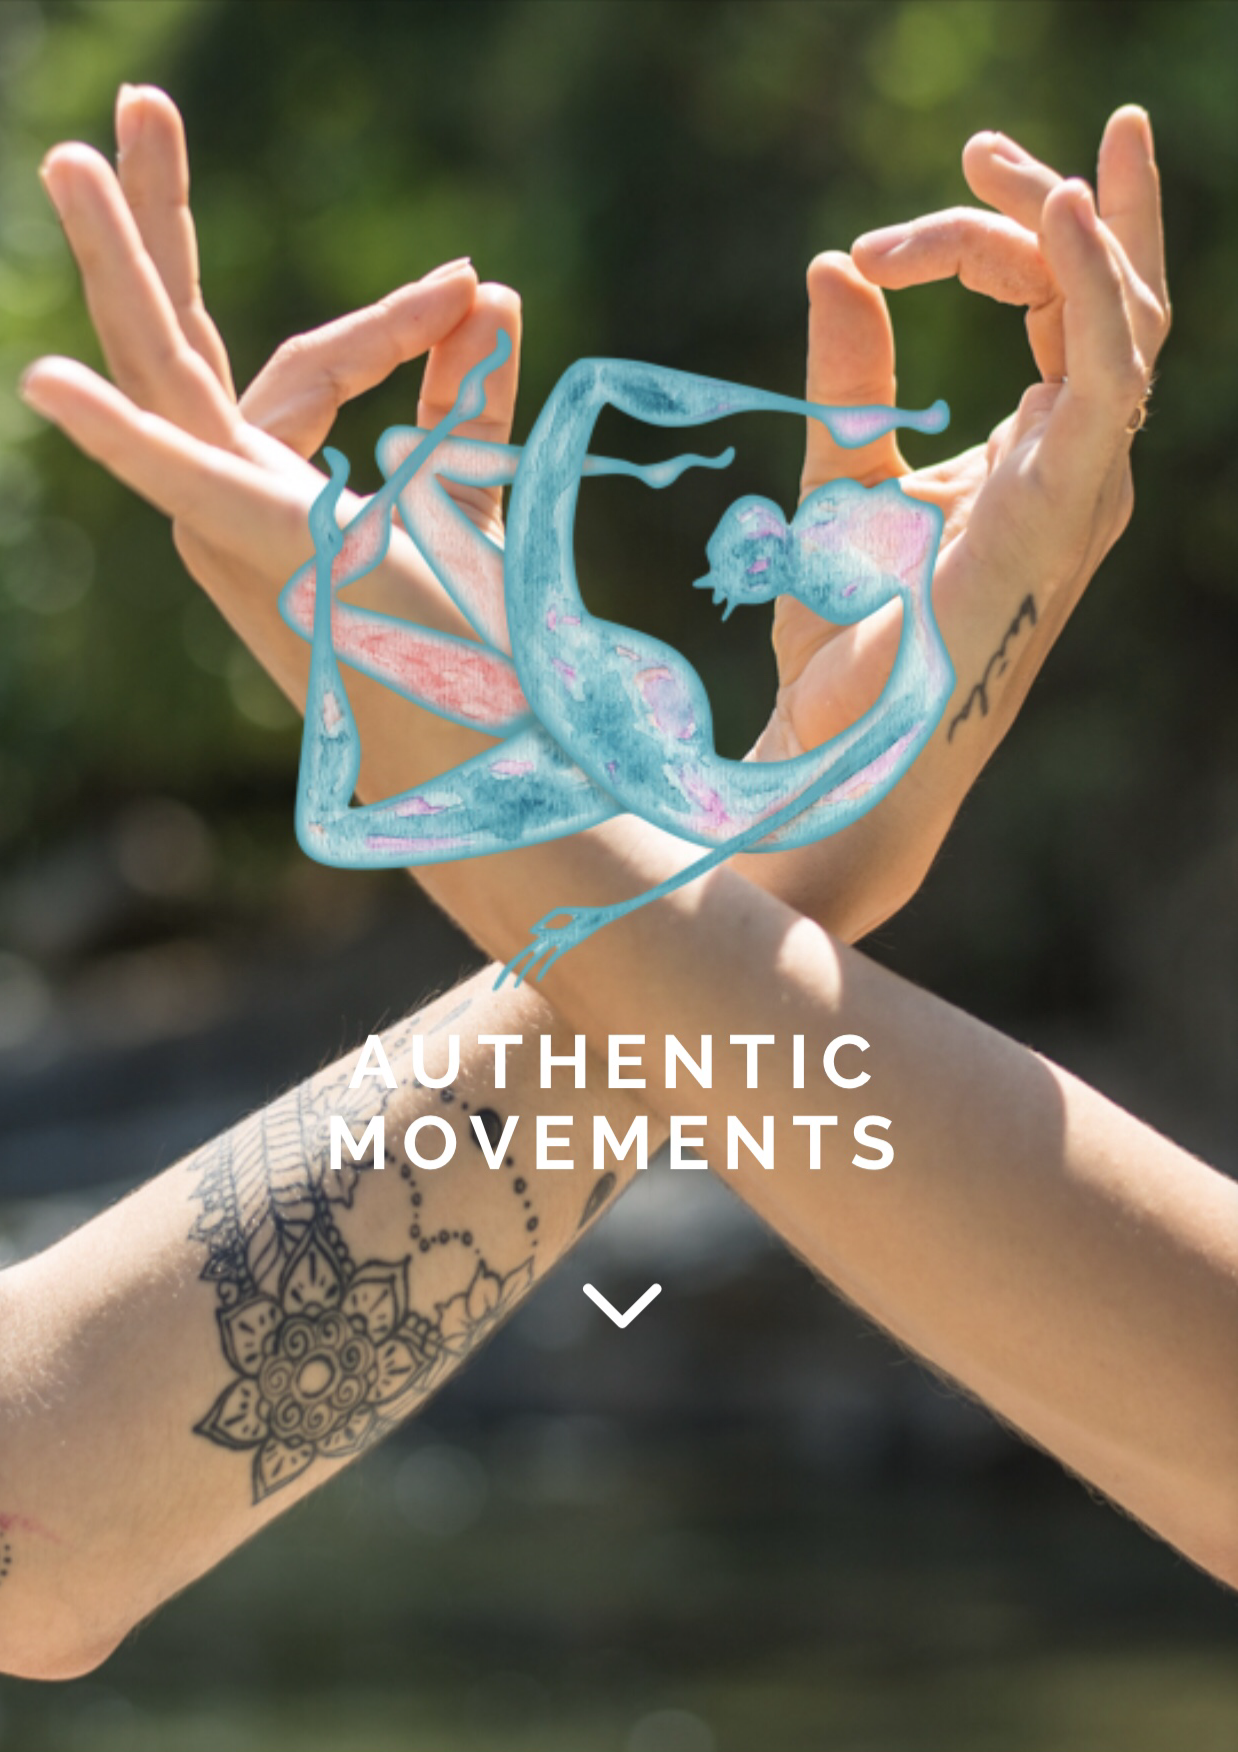 authentic movements two hands and logo